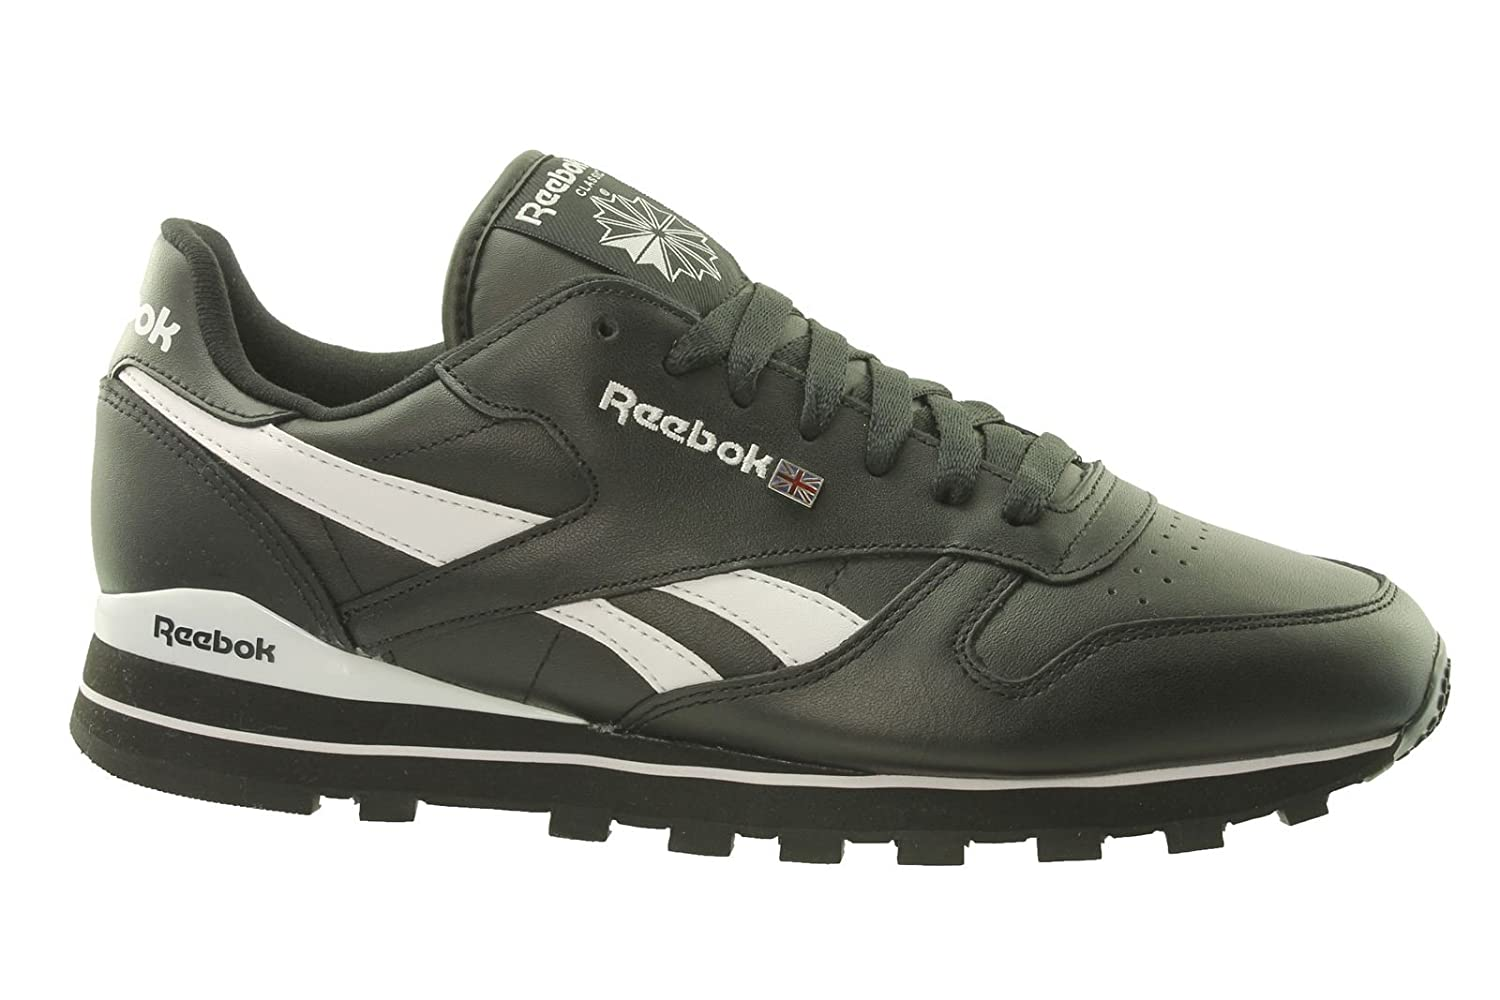 8b32baf1f30991 Reebok Classic Leather Clip V51800 Mens Trainers UK 6.5  99.Y16   Amazon.co.uk  Shoes   Bags